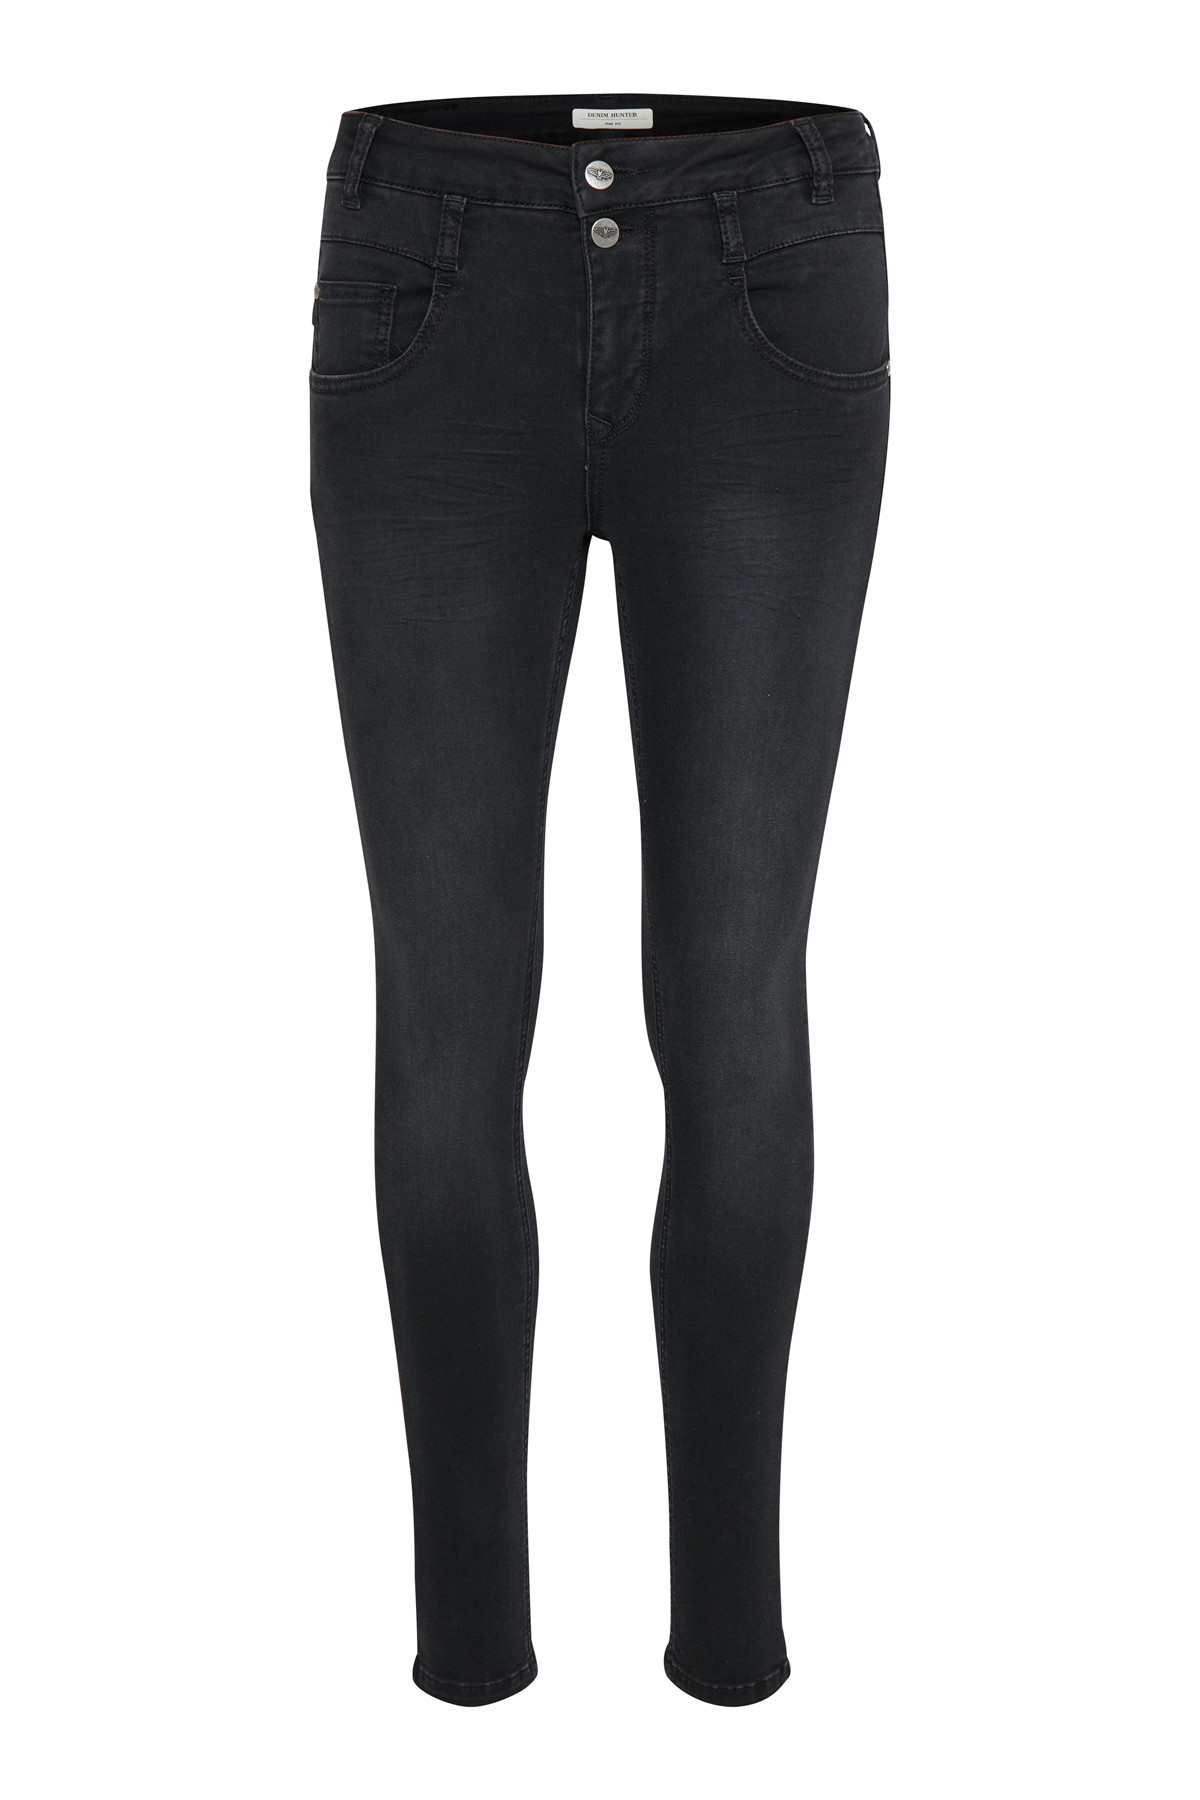 Image of   Denim Hunter FIOLA FREE JEANS 10701295 (Black Washed 36012, 33)